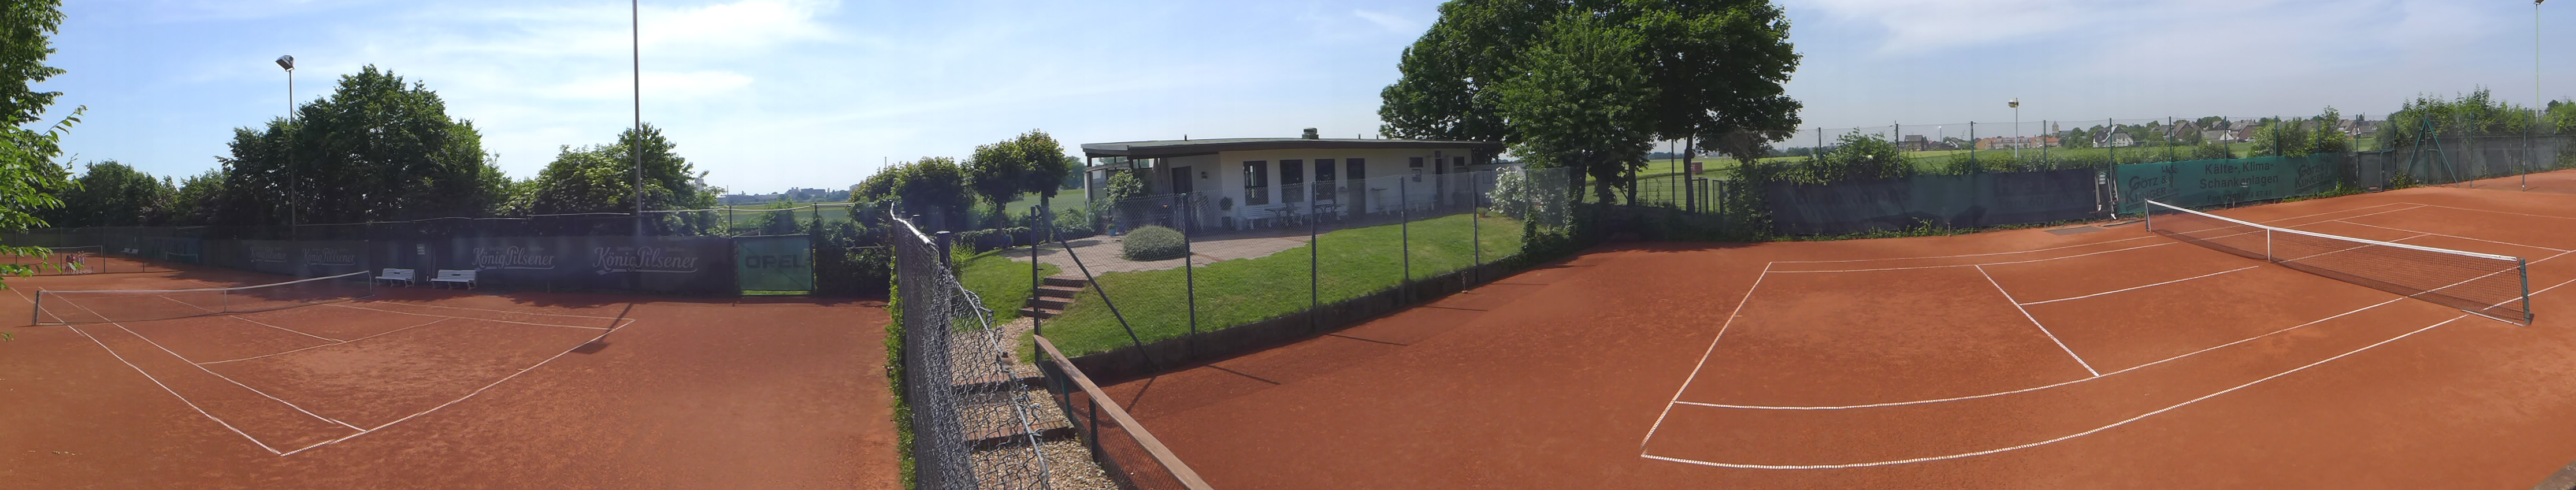 tennis-033-homepage-panorama-3